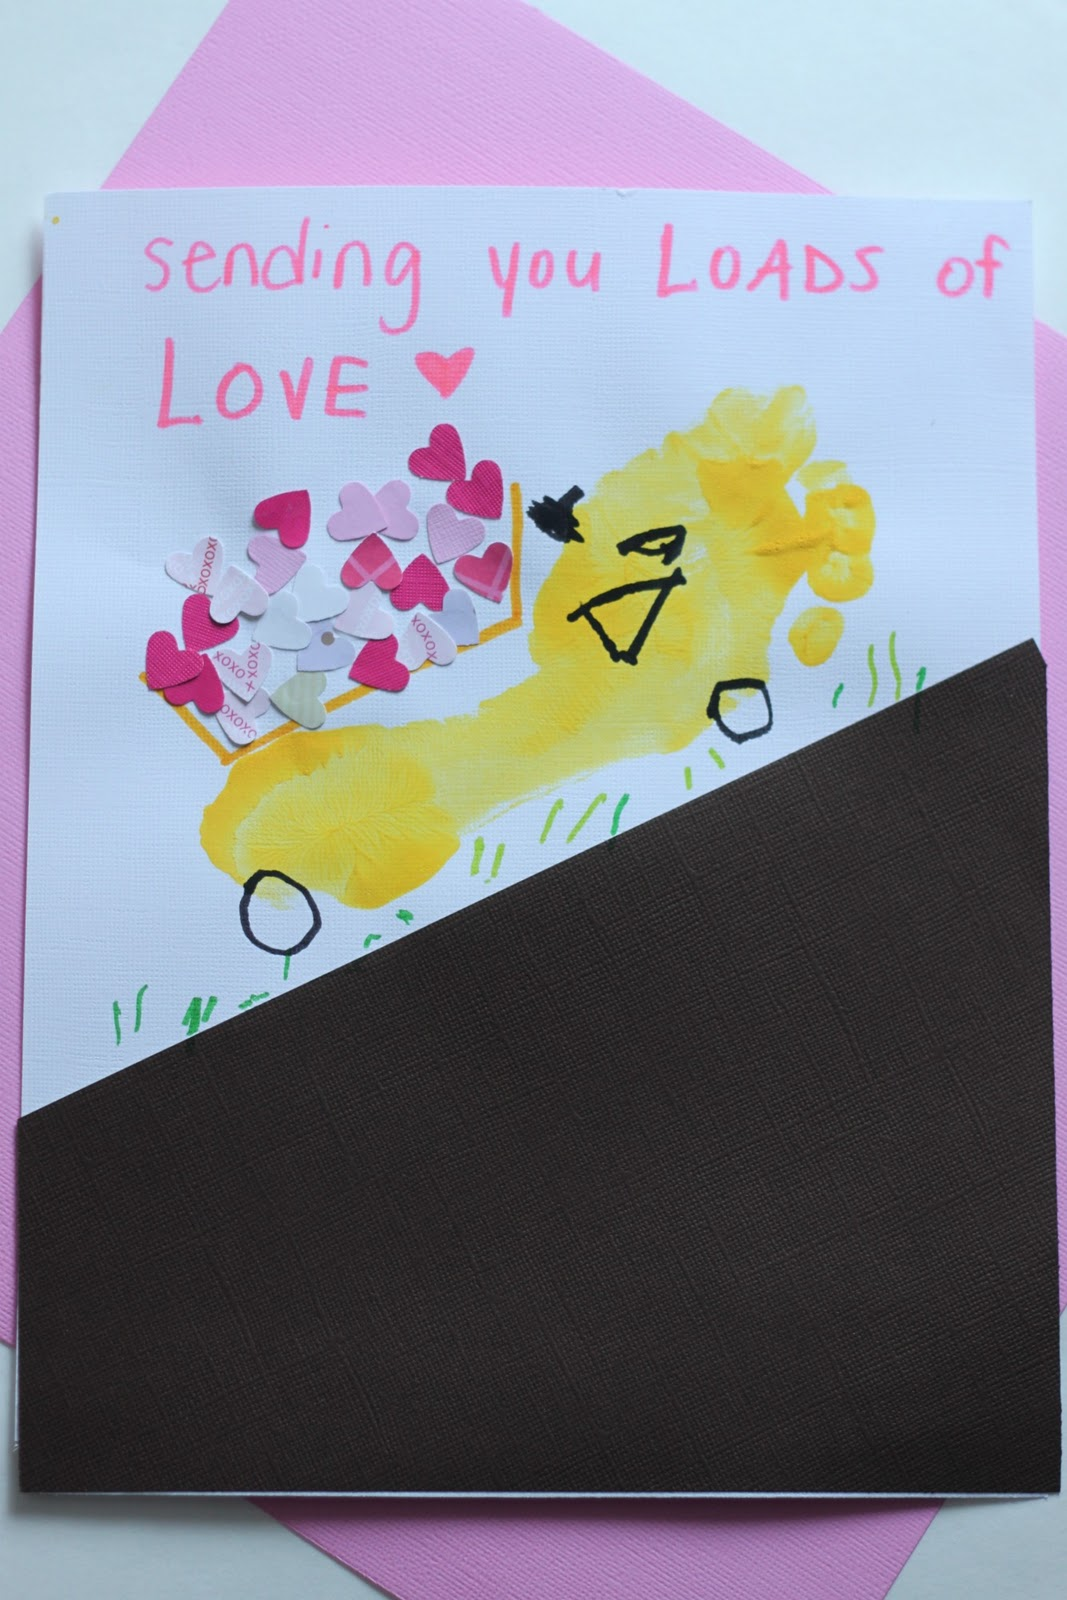 This dump truck valentine is the perfect gender-neutral footprint craft